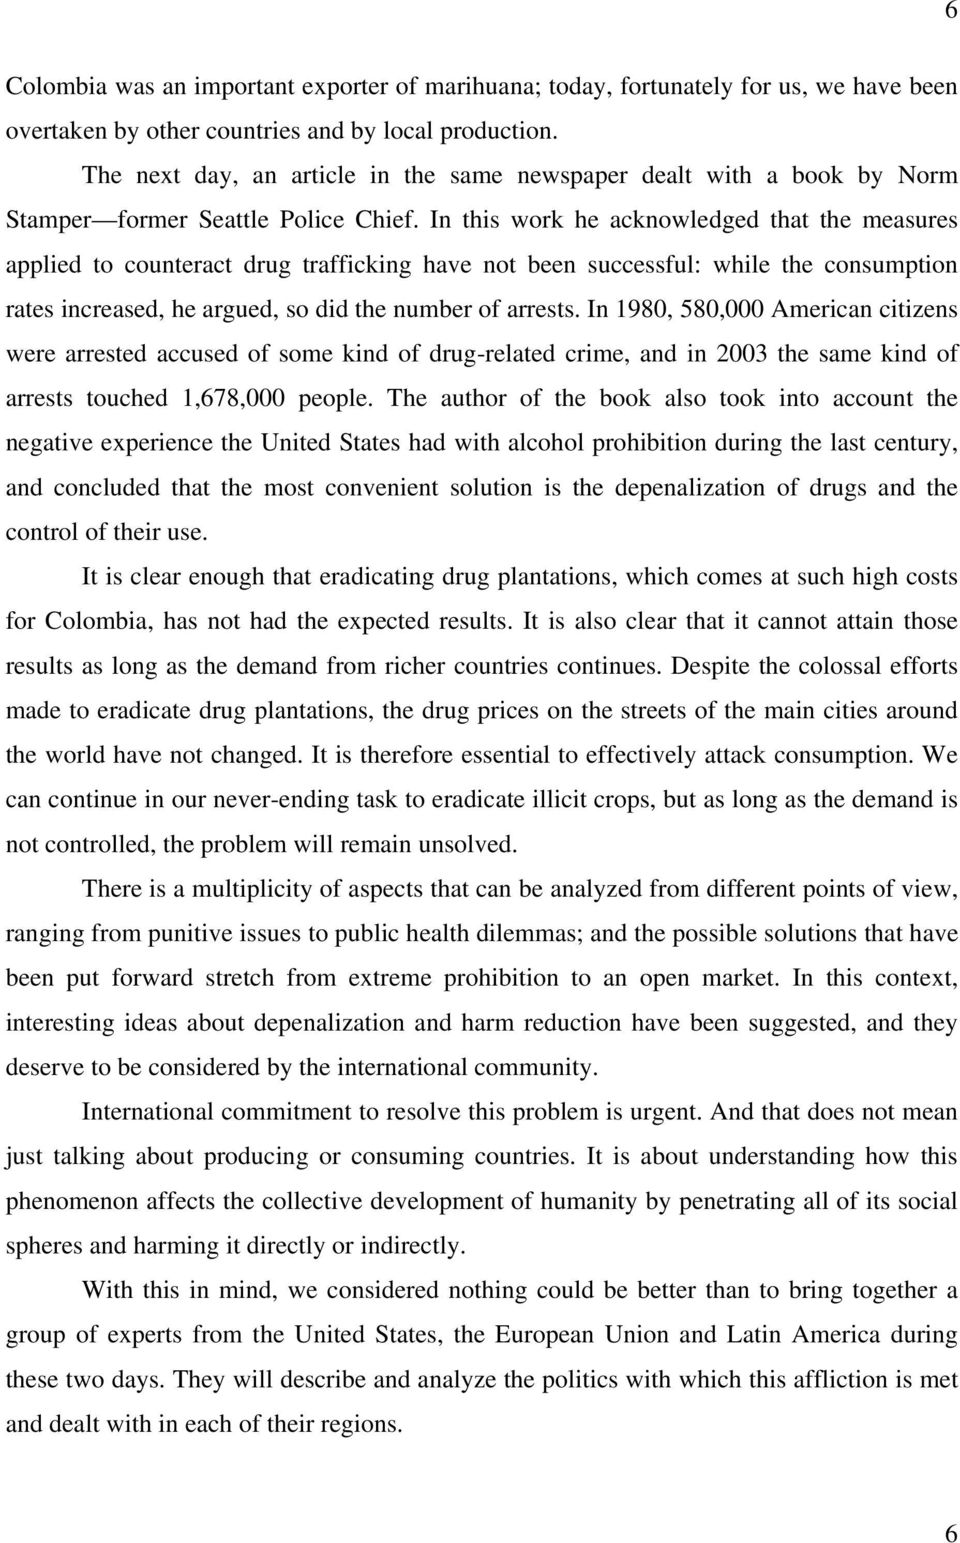 In this work he acknowledged that the measures applied to counteract drug trafficking have not been successful: while the consumption rates increased, he argued, so did the number of arrests.